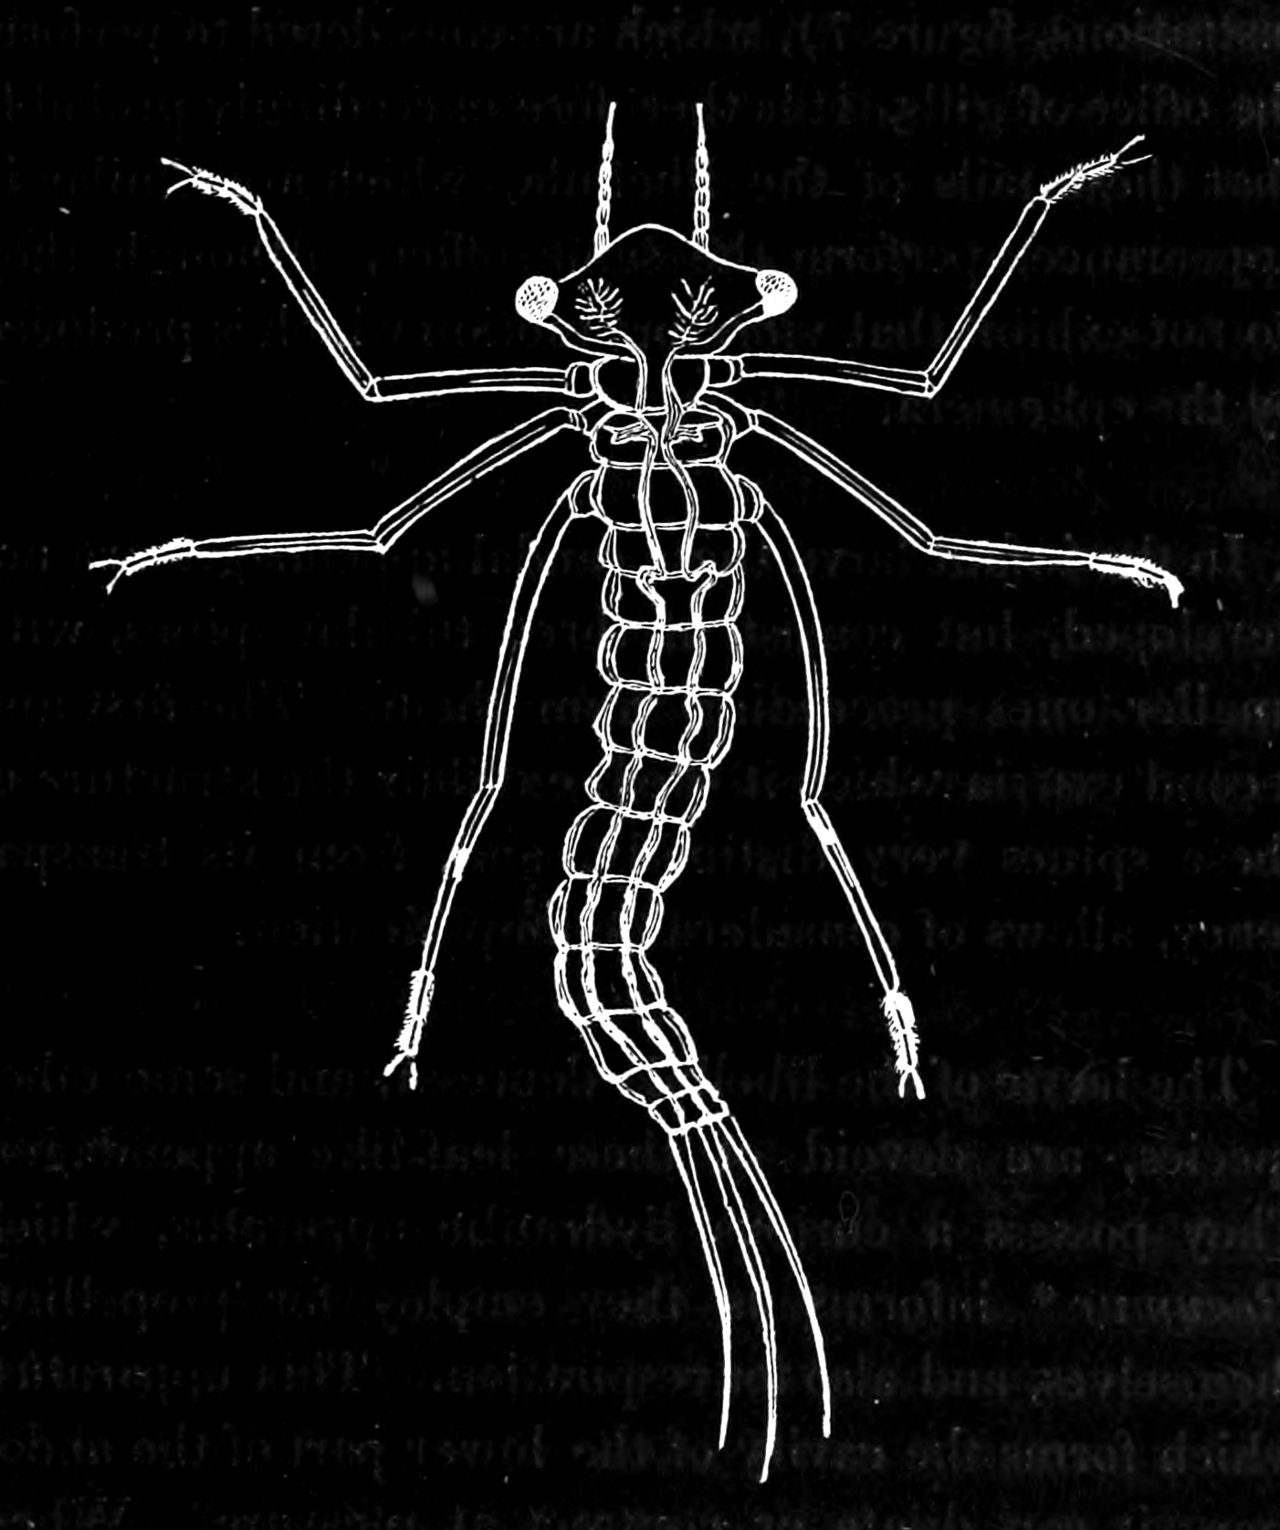 dragonfly larvae pdf biogeography of dragonflies and damselflies the dragonfly larvae